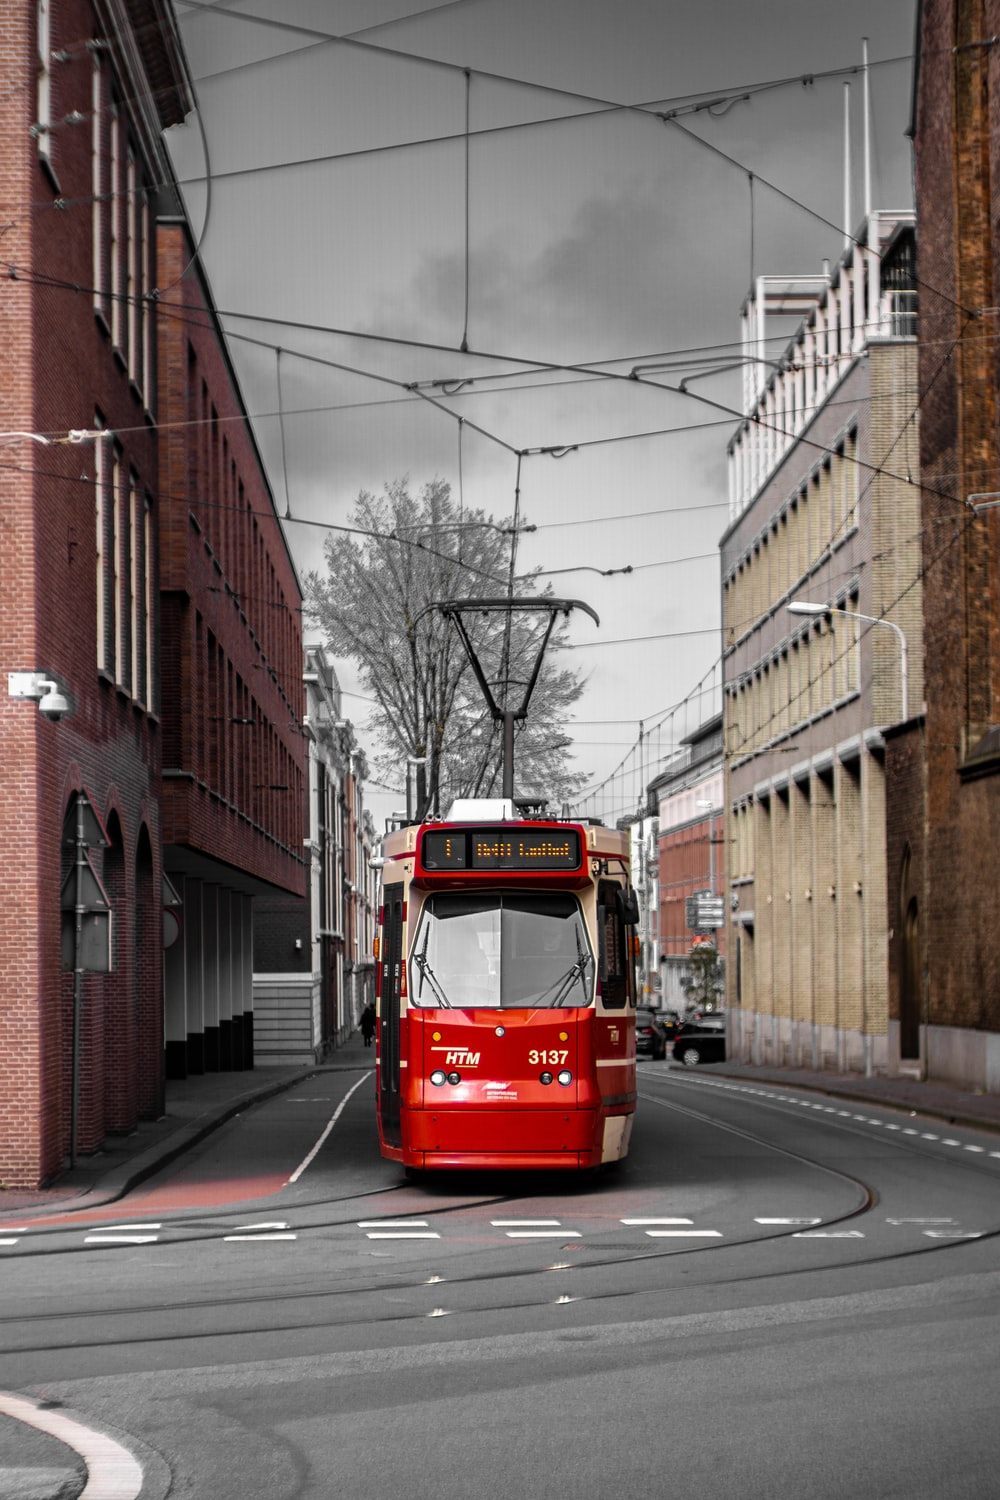 red tram on road during daytime